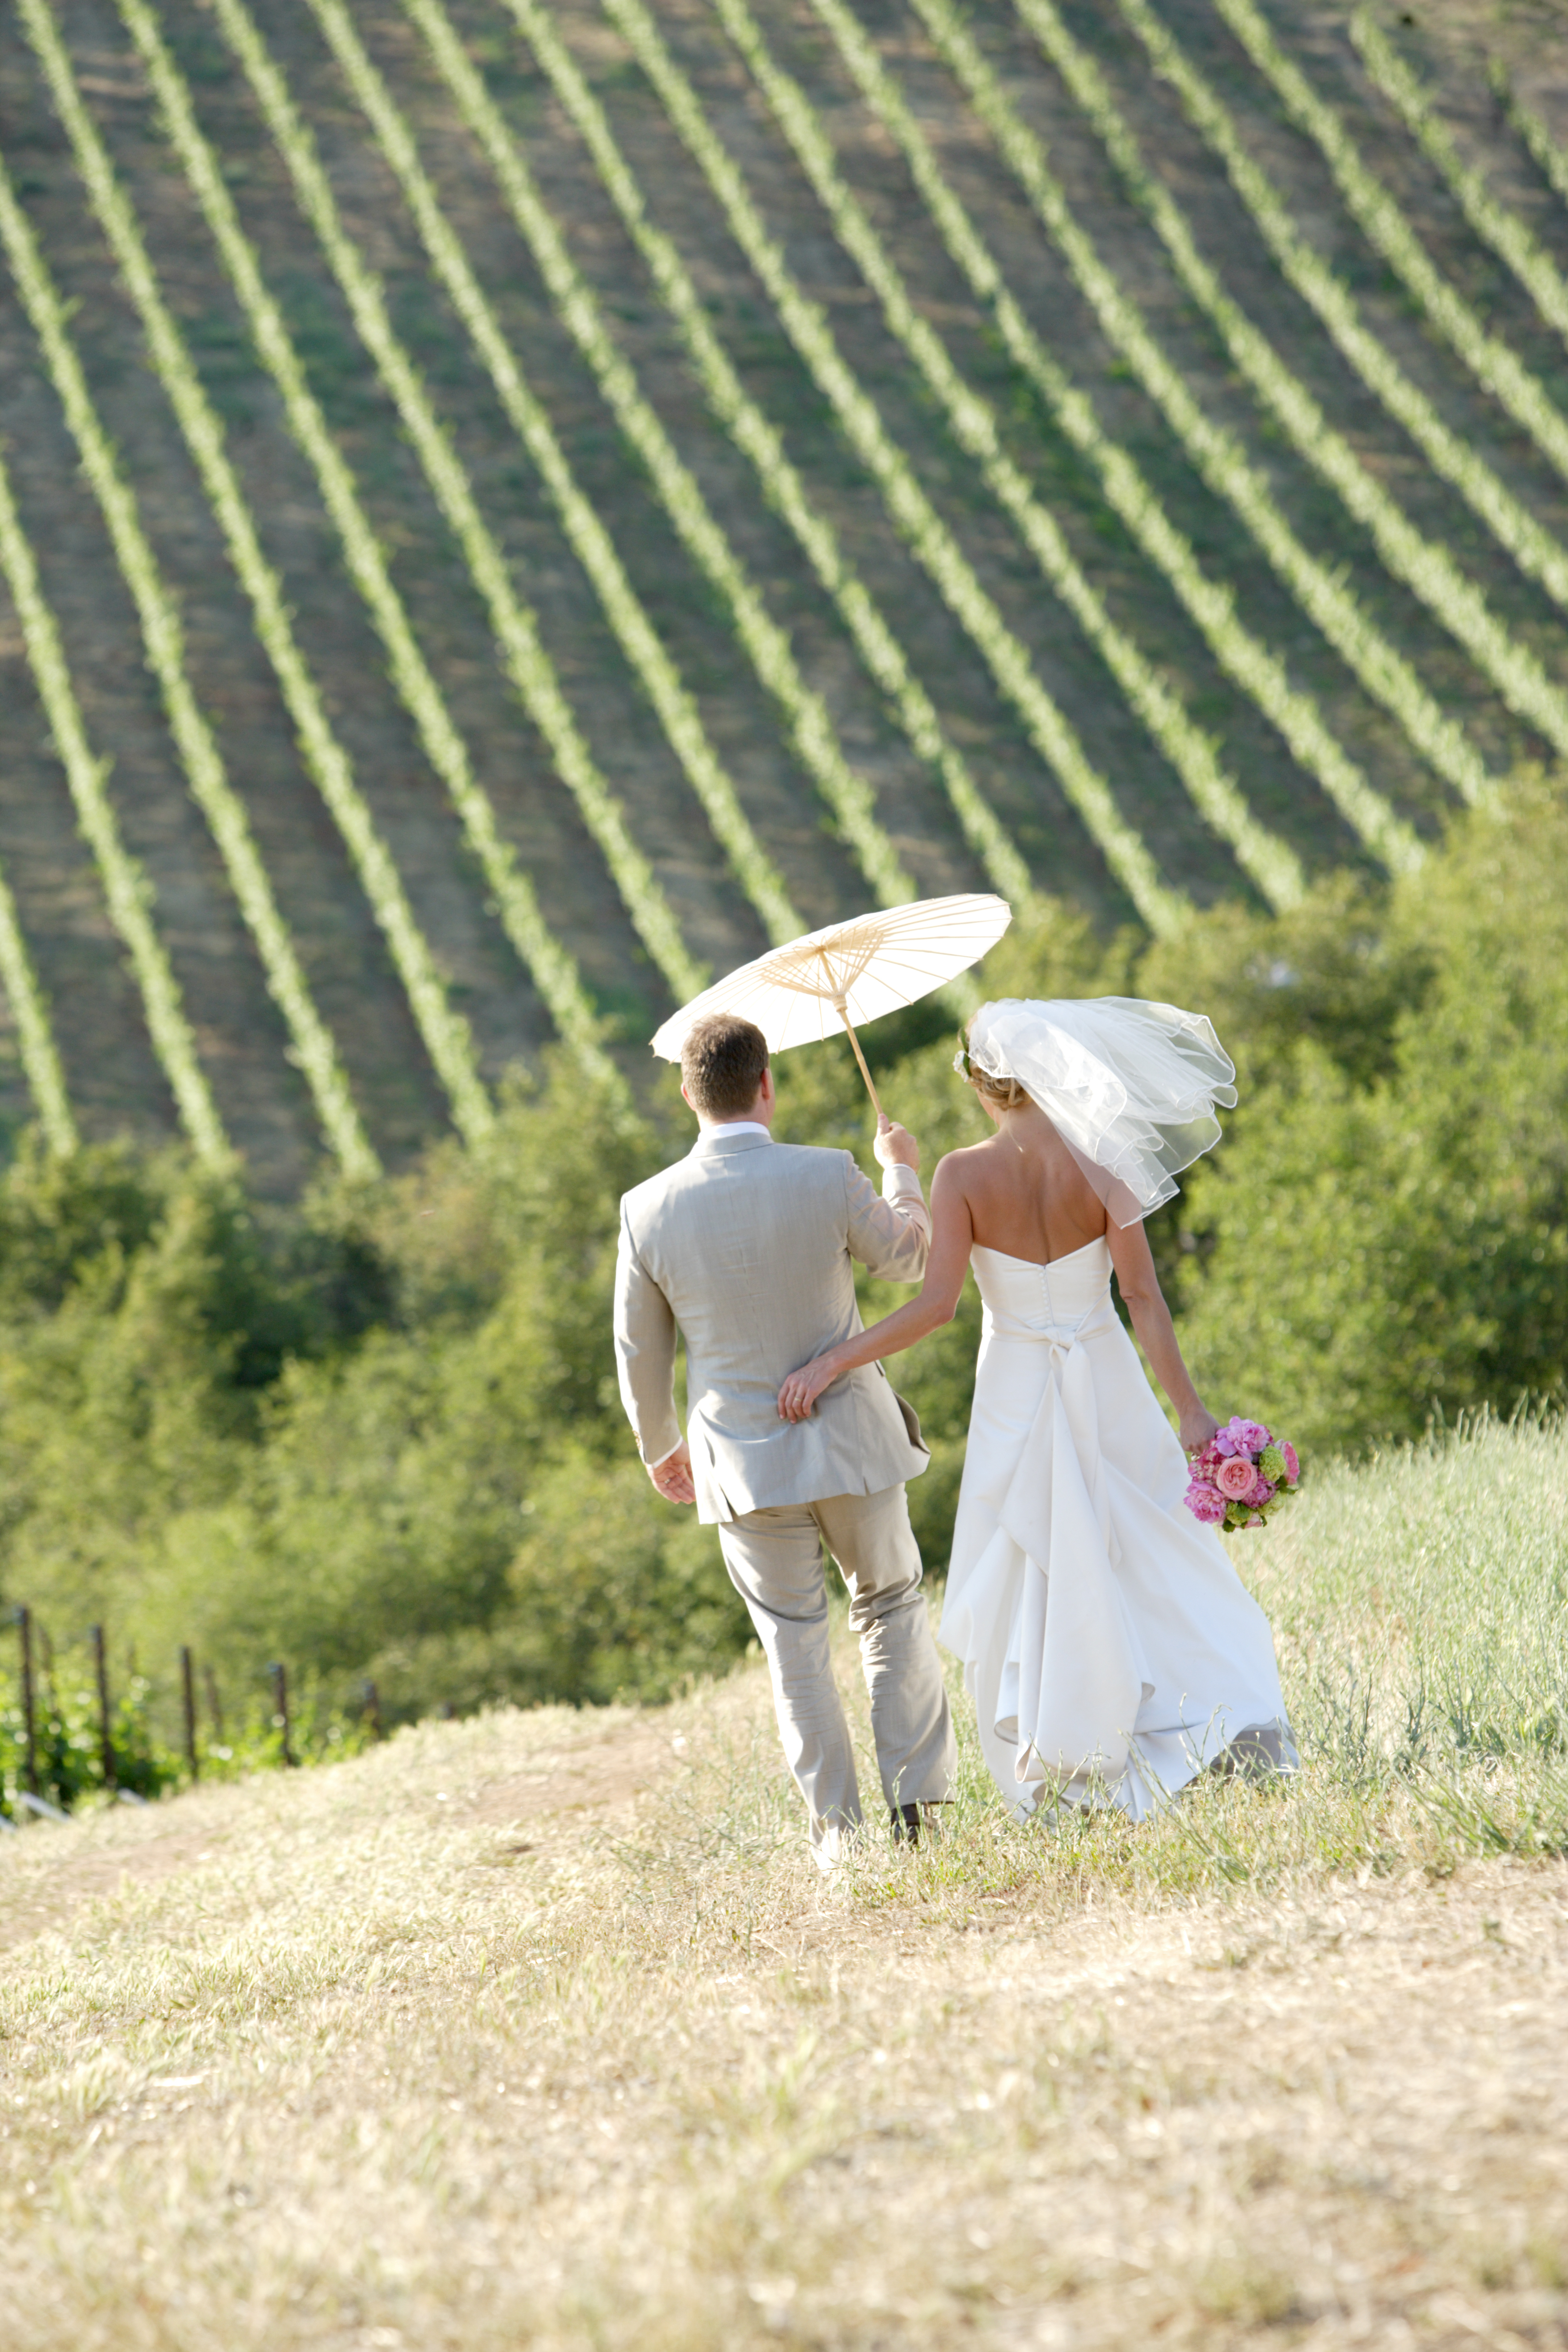 Flowers & Decor, gold, Vineyard, Wedding, Umbrella, Winery, Hill, Married, Country, Just, Foothills, Vines, Modernlite, Stevenot